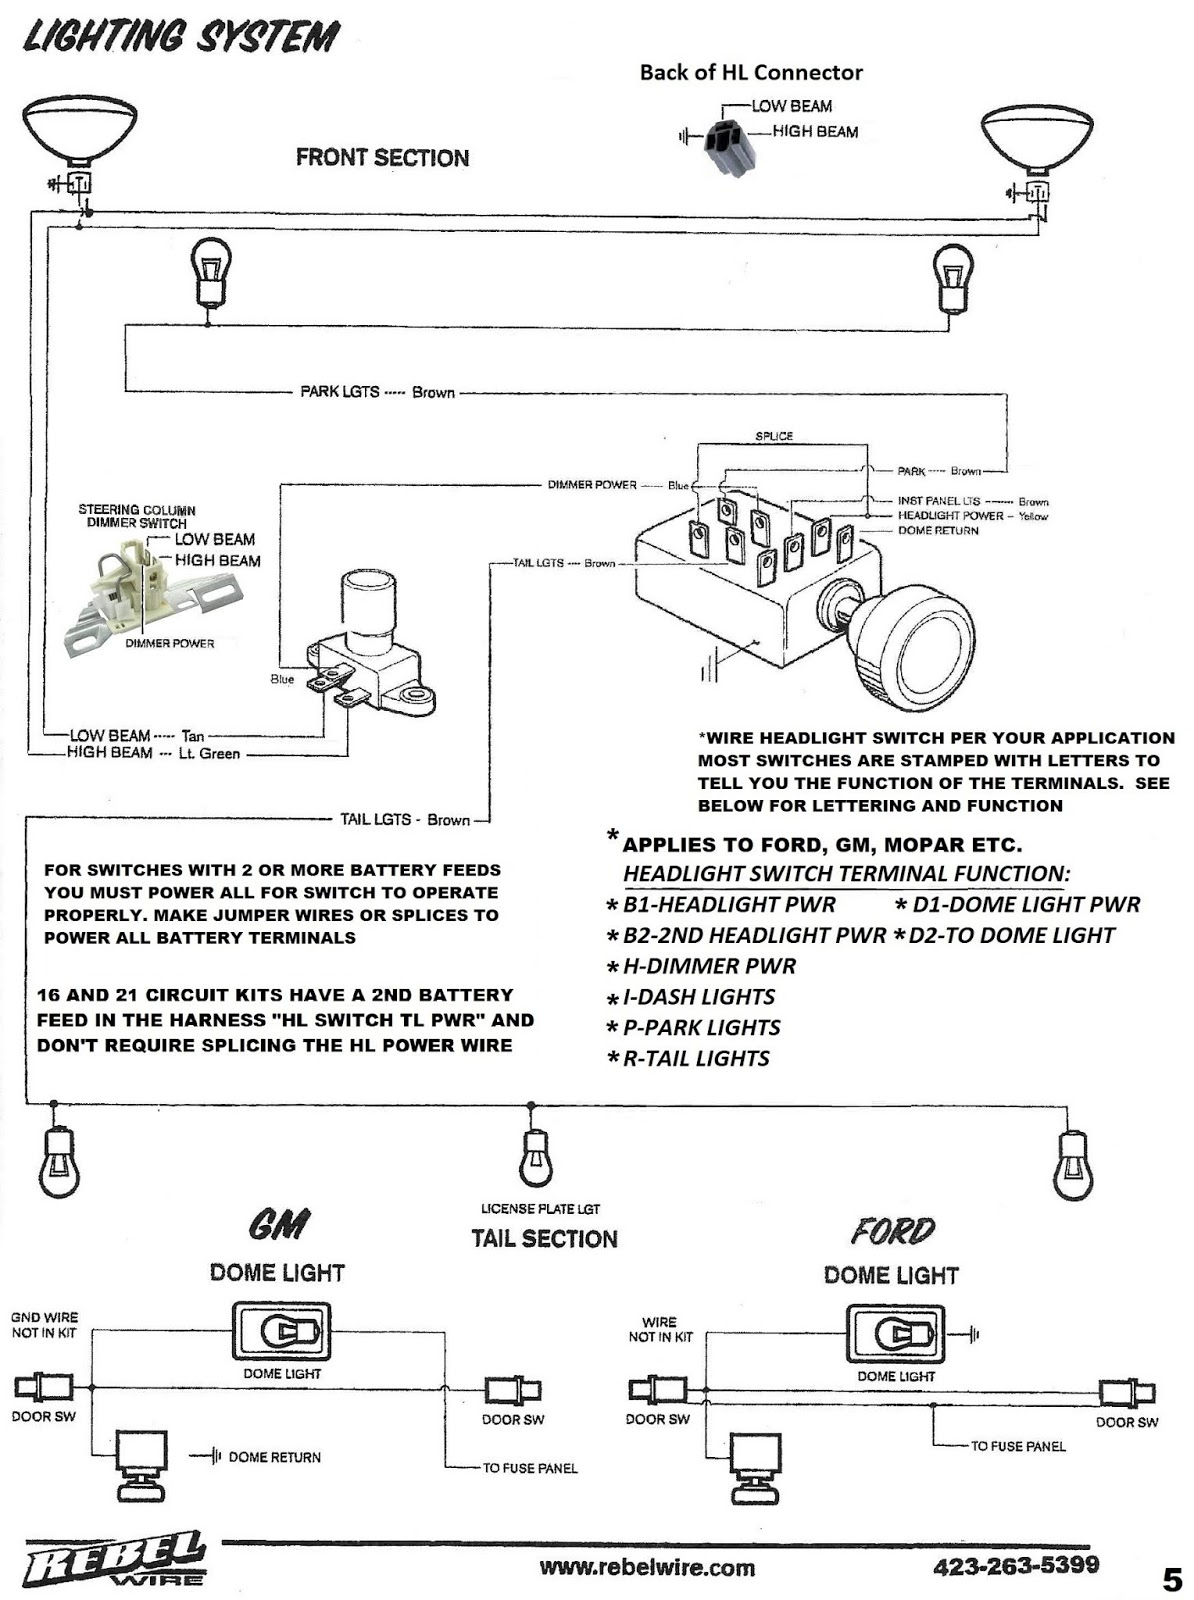 small resolution of 60 s cadillac headlight switch rebel wire lighting system wiring diagram